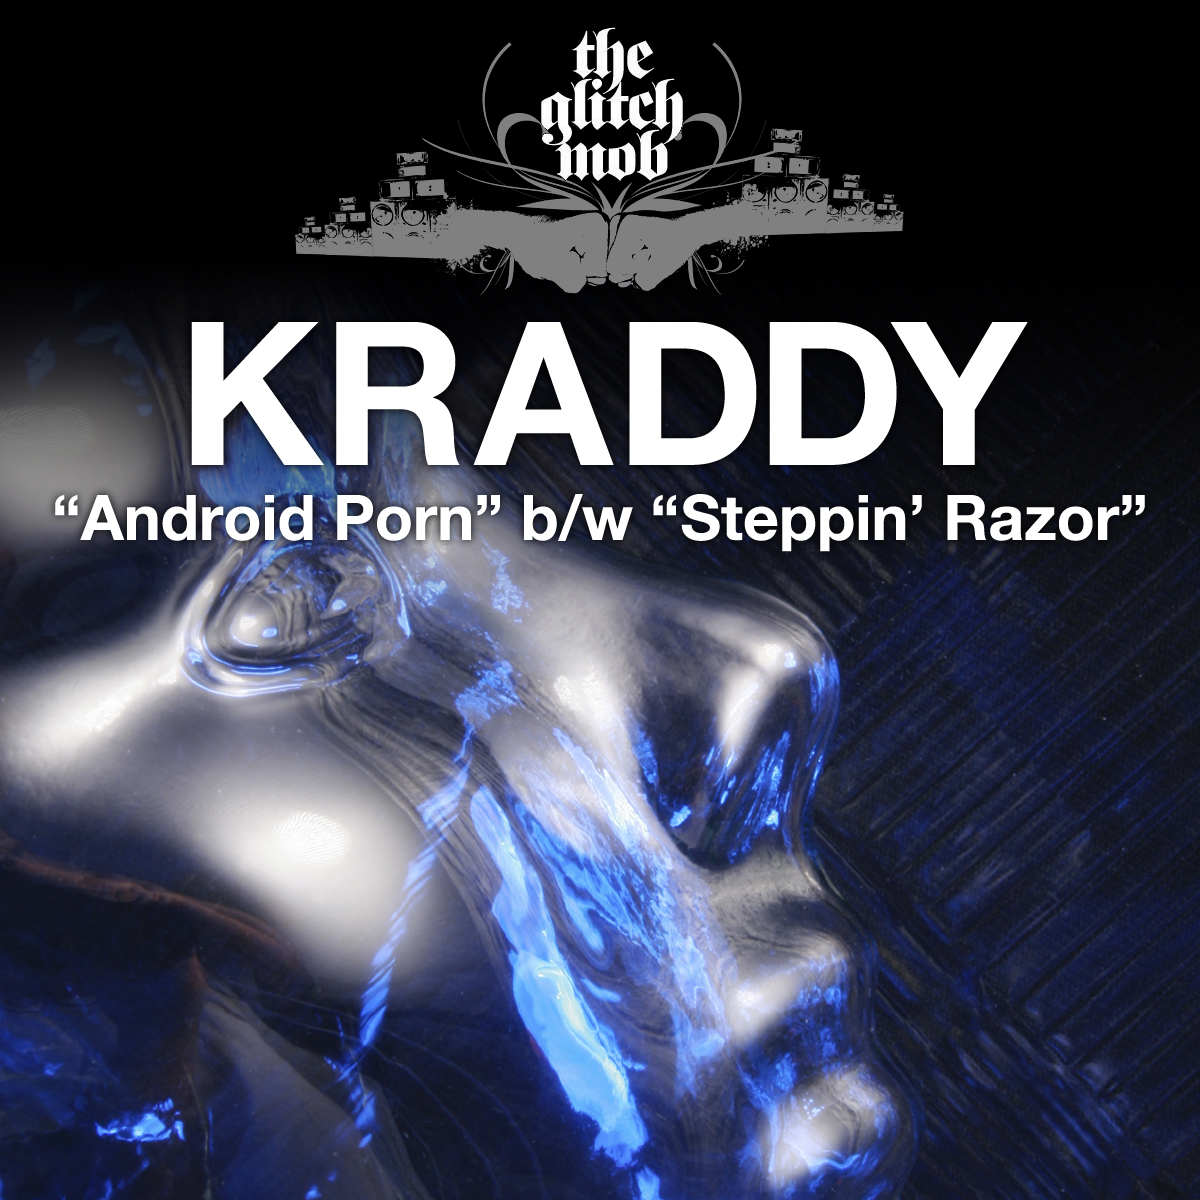 Смотреть онлайн на youtubey.ru Kraddy - Android Porn 720 HD.